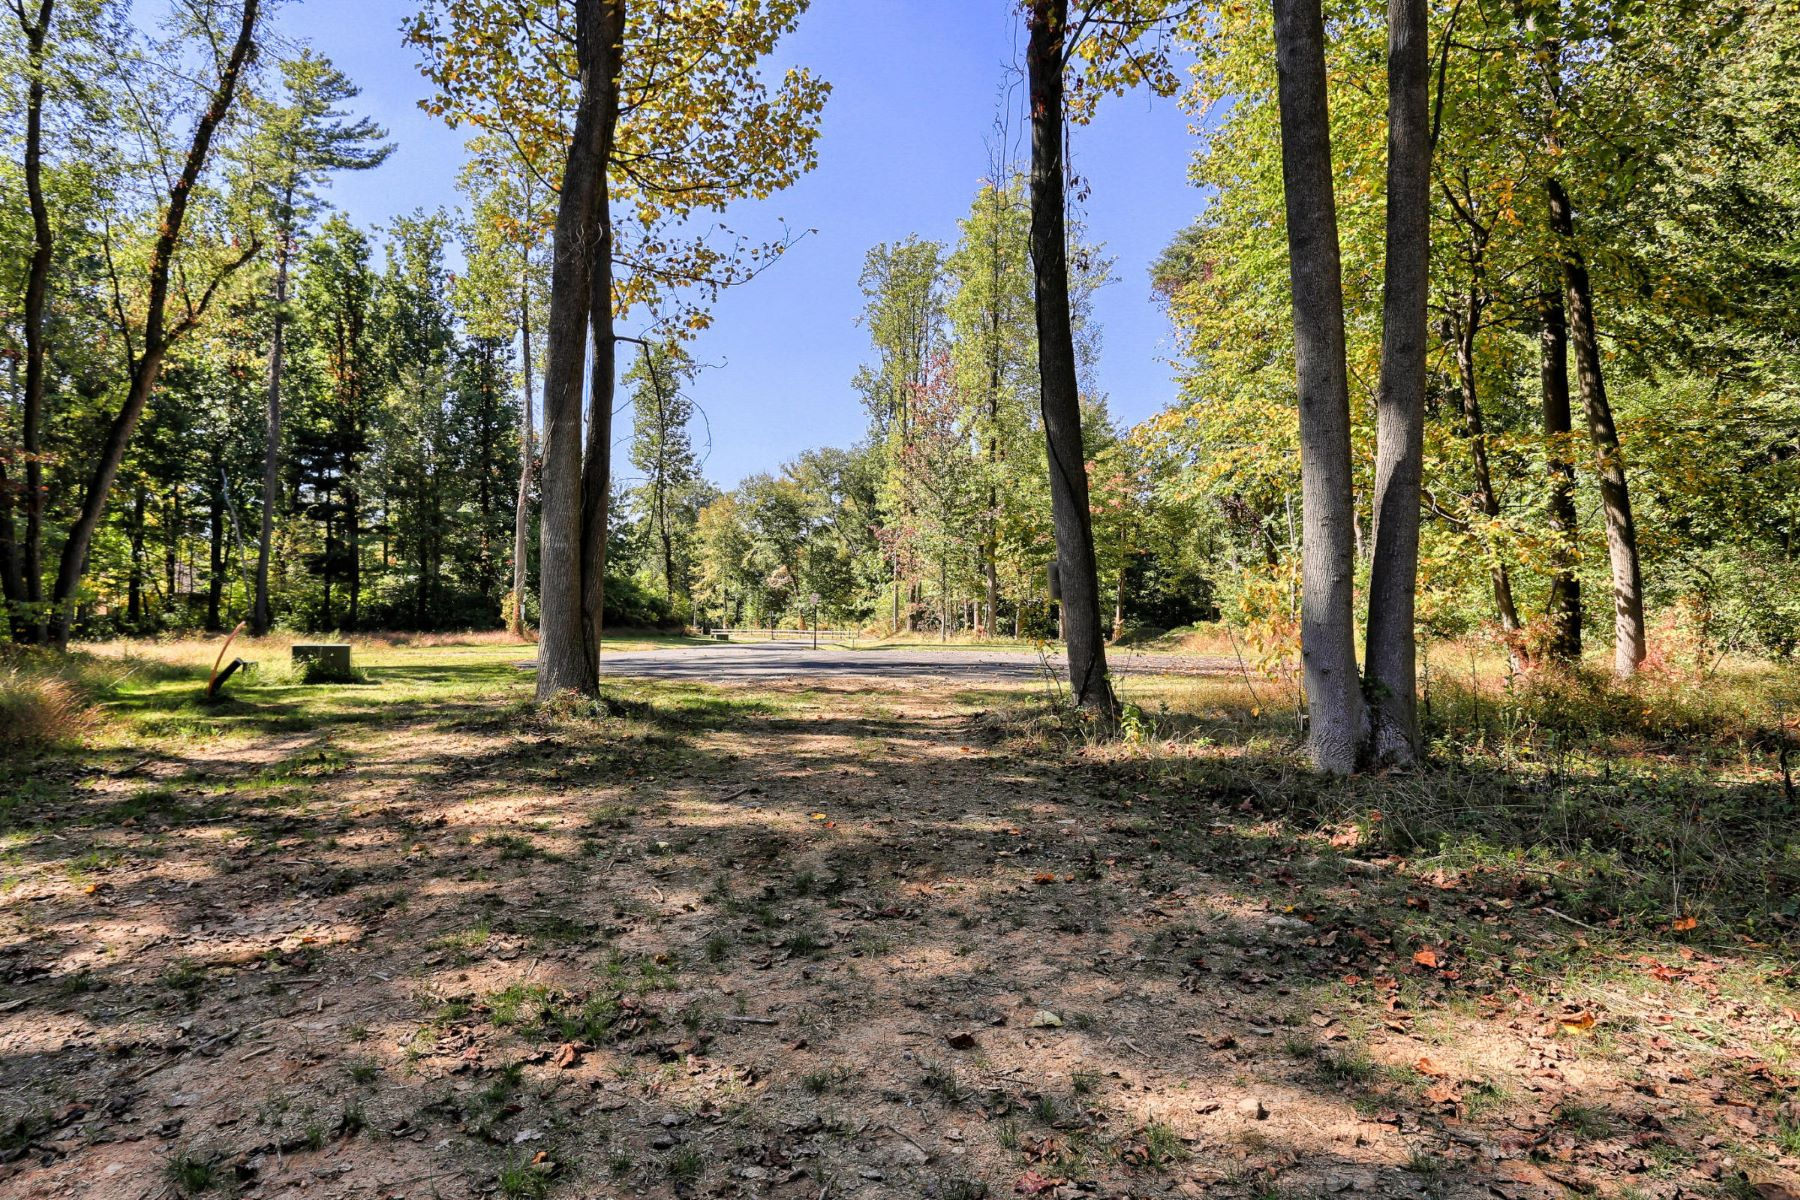 Land for Sale at Hilldale Estates 8 Joann Lane lot 4, Pequea, Pennsylvania 17565 United States